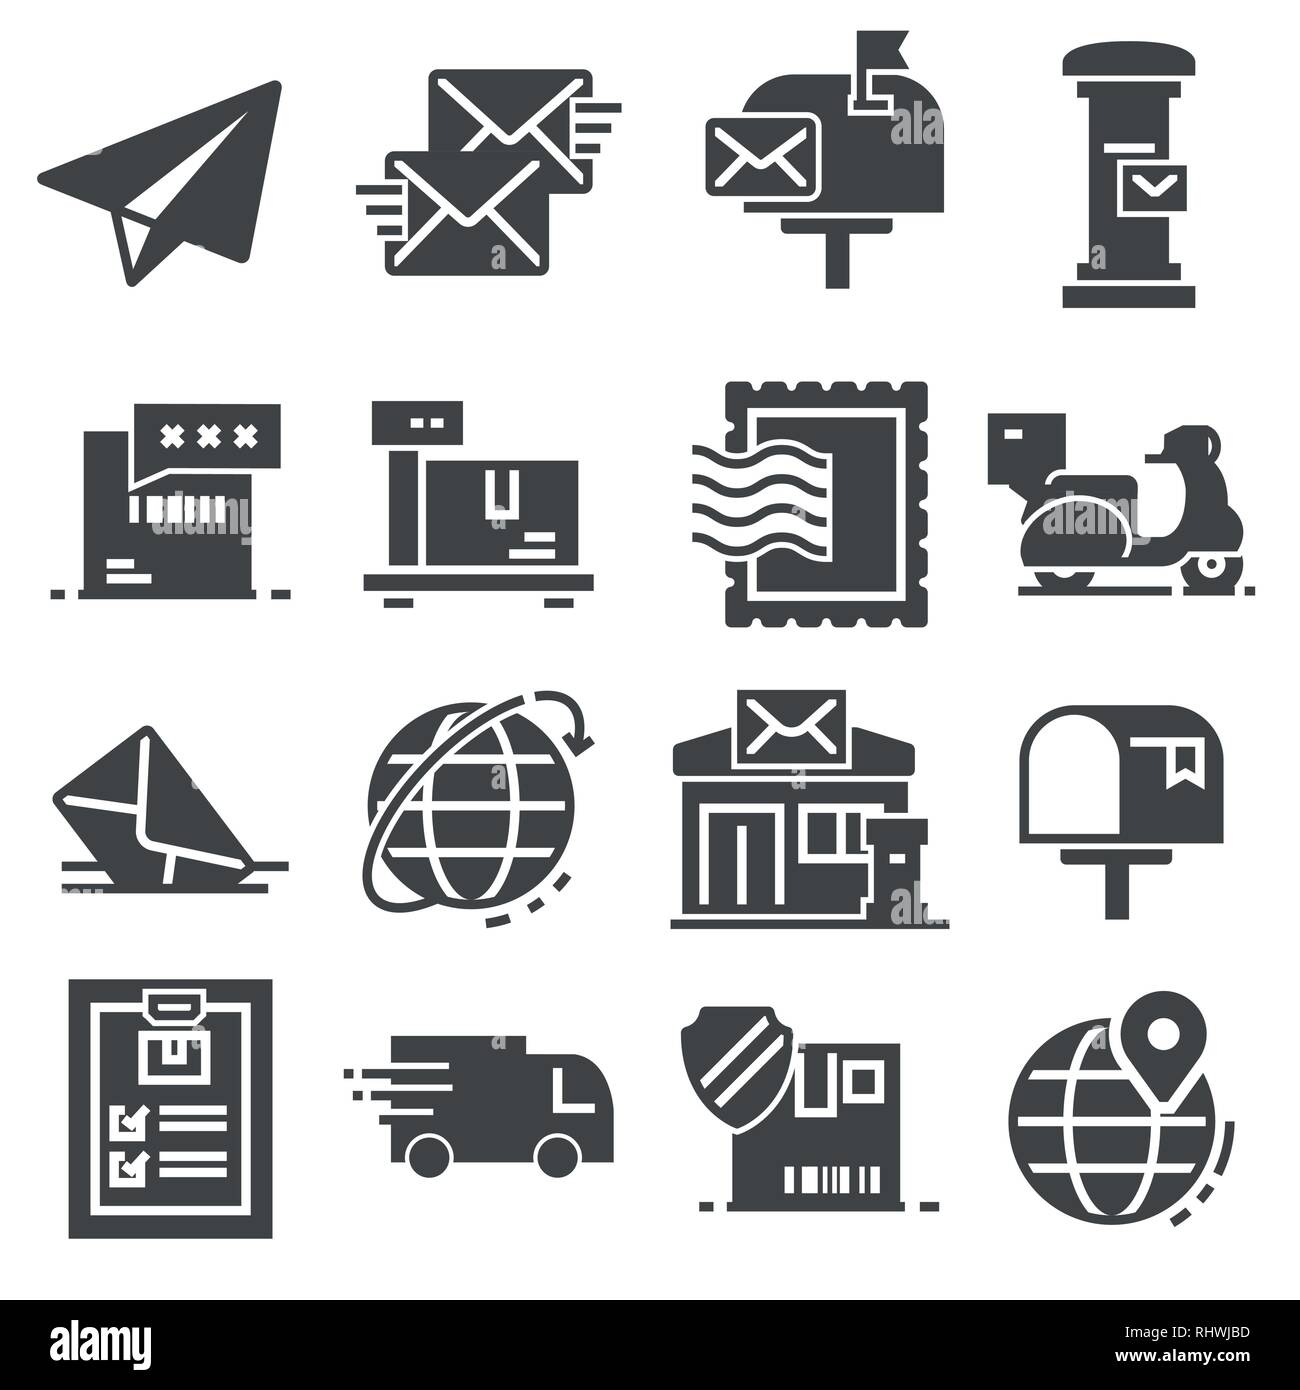 Postal service set of gray icons on white background - Stock Vector